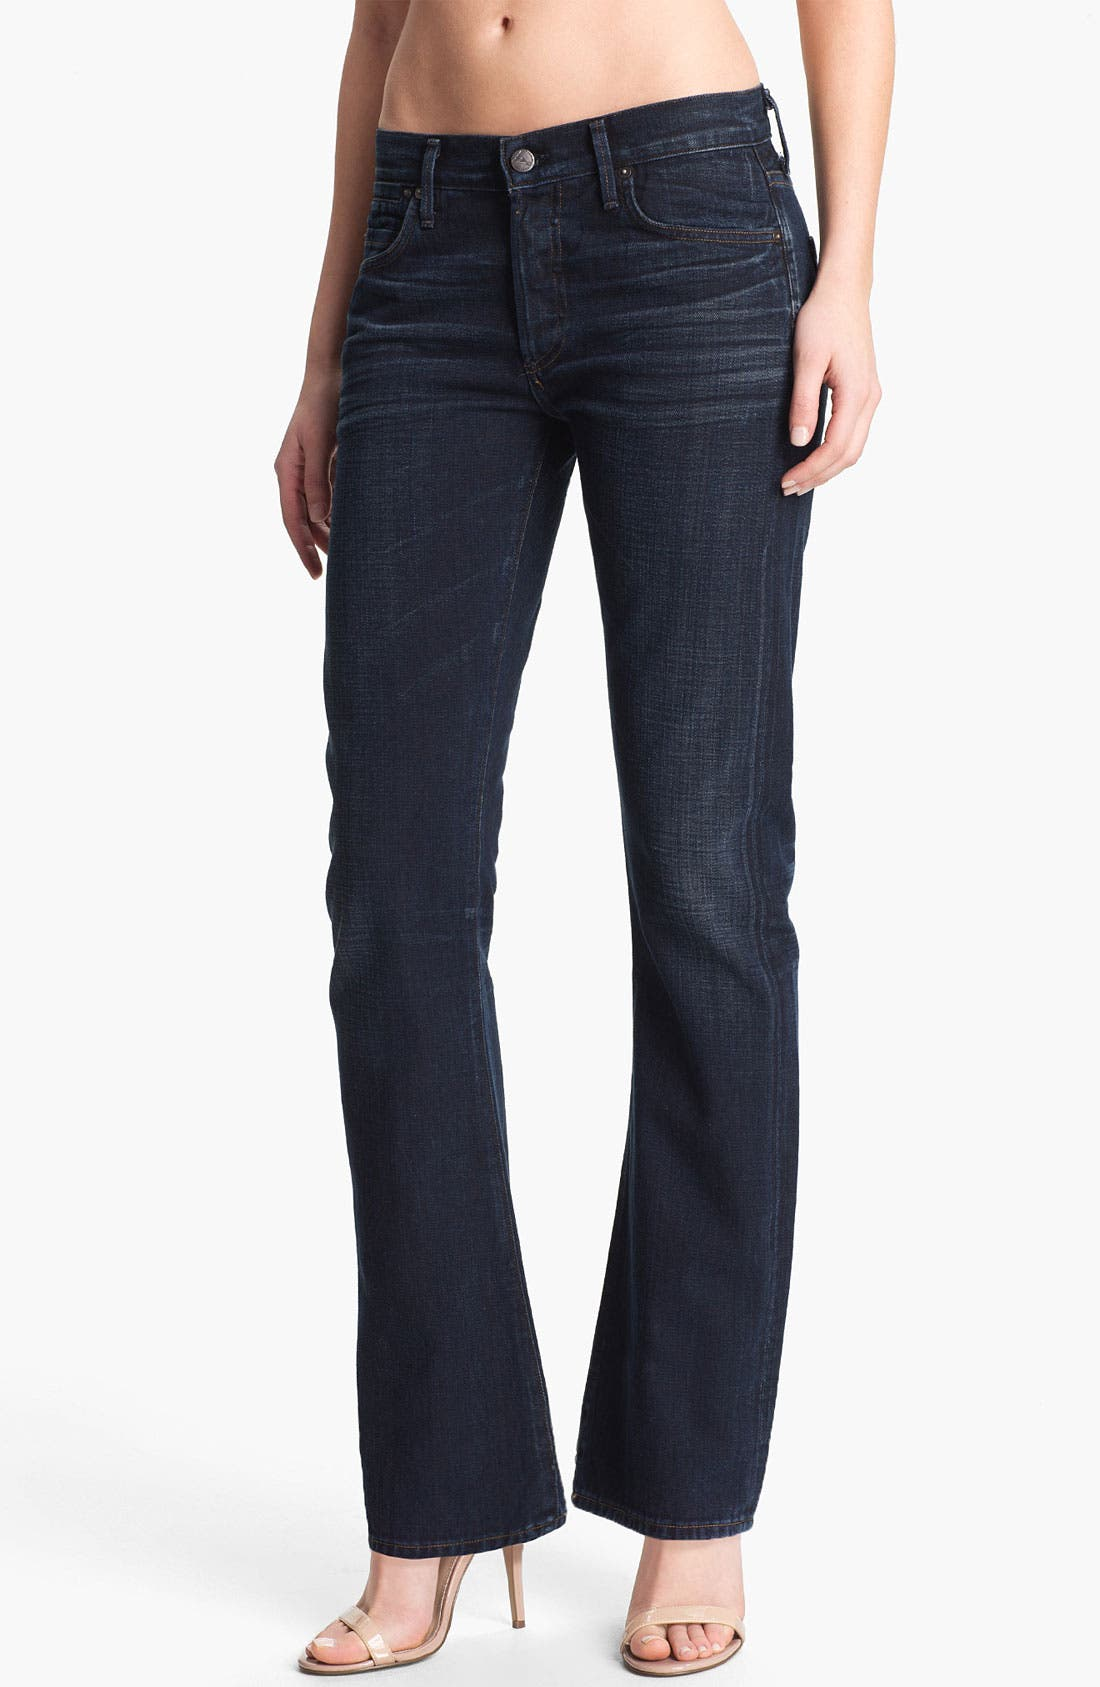 Alternate Image 1 Selected - Citizens of Humanity 'Riley' Boyfriend Bootcut Jeans